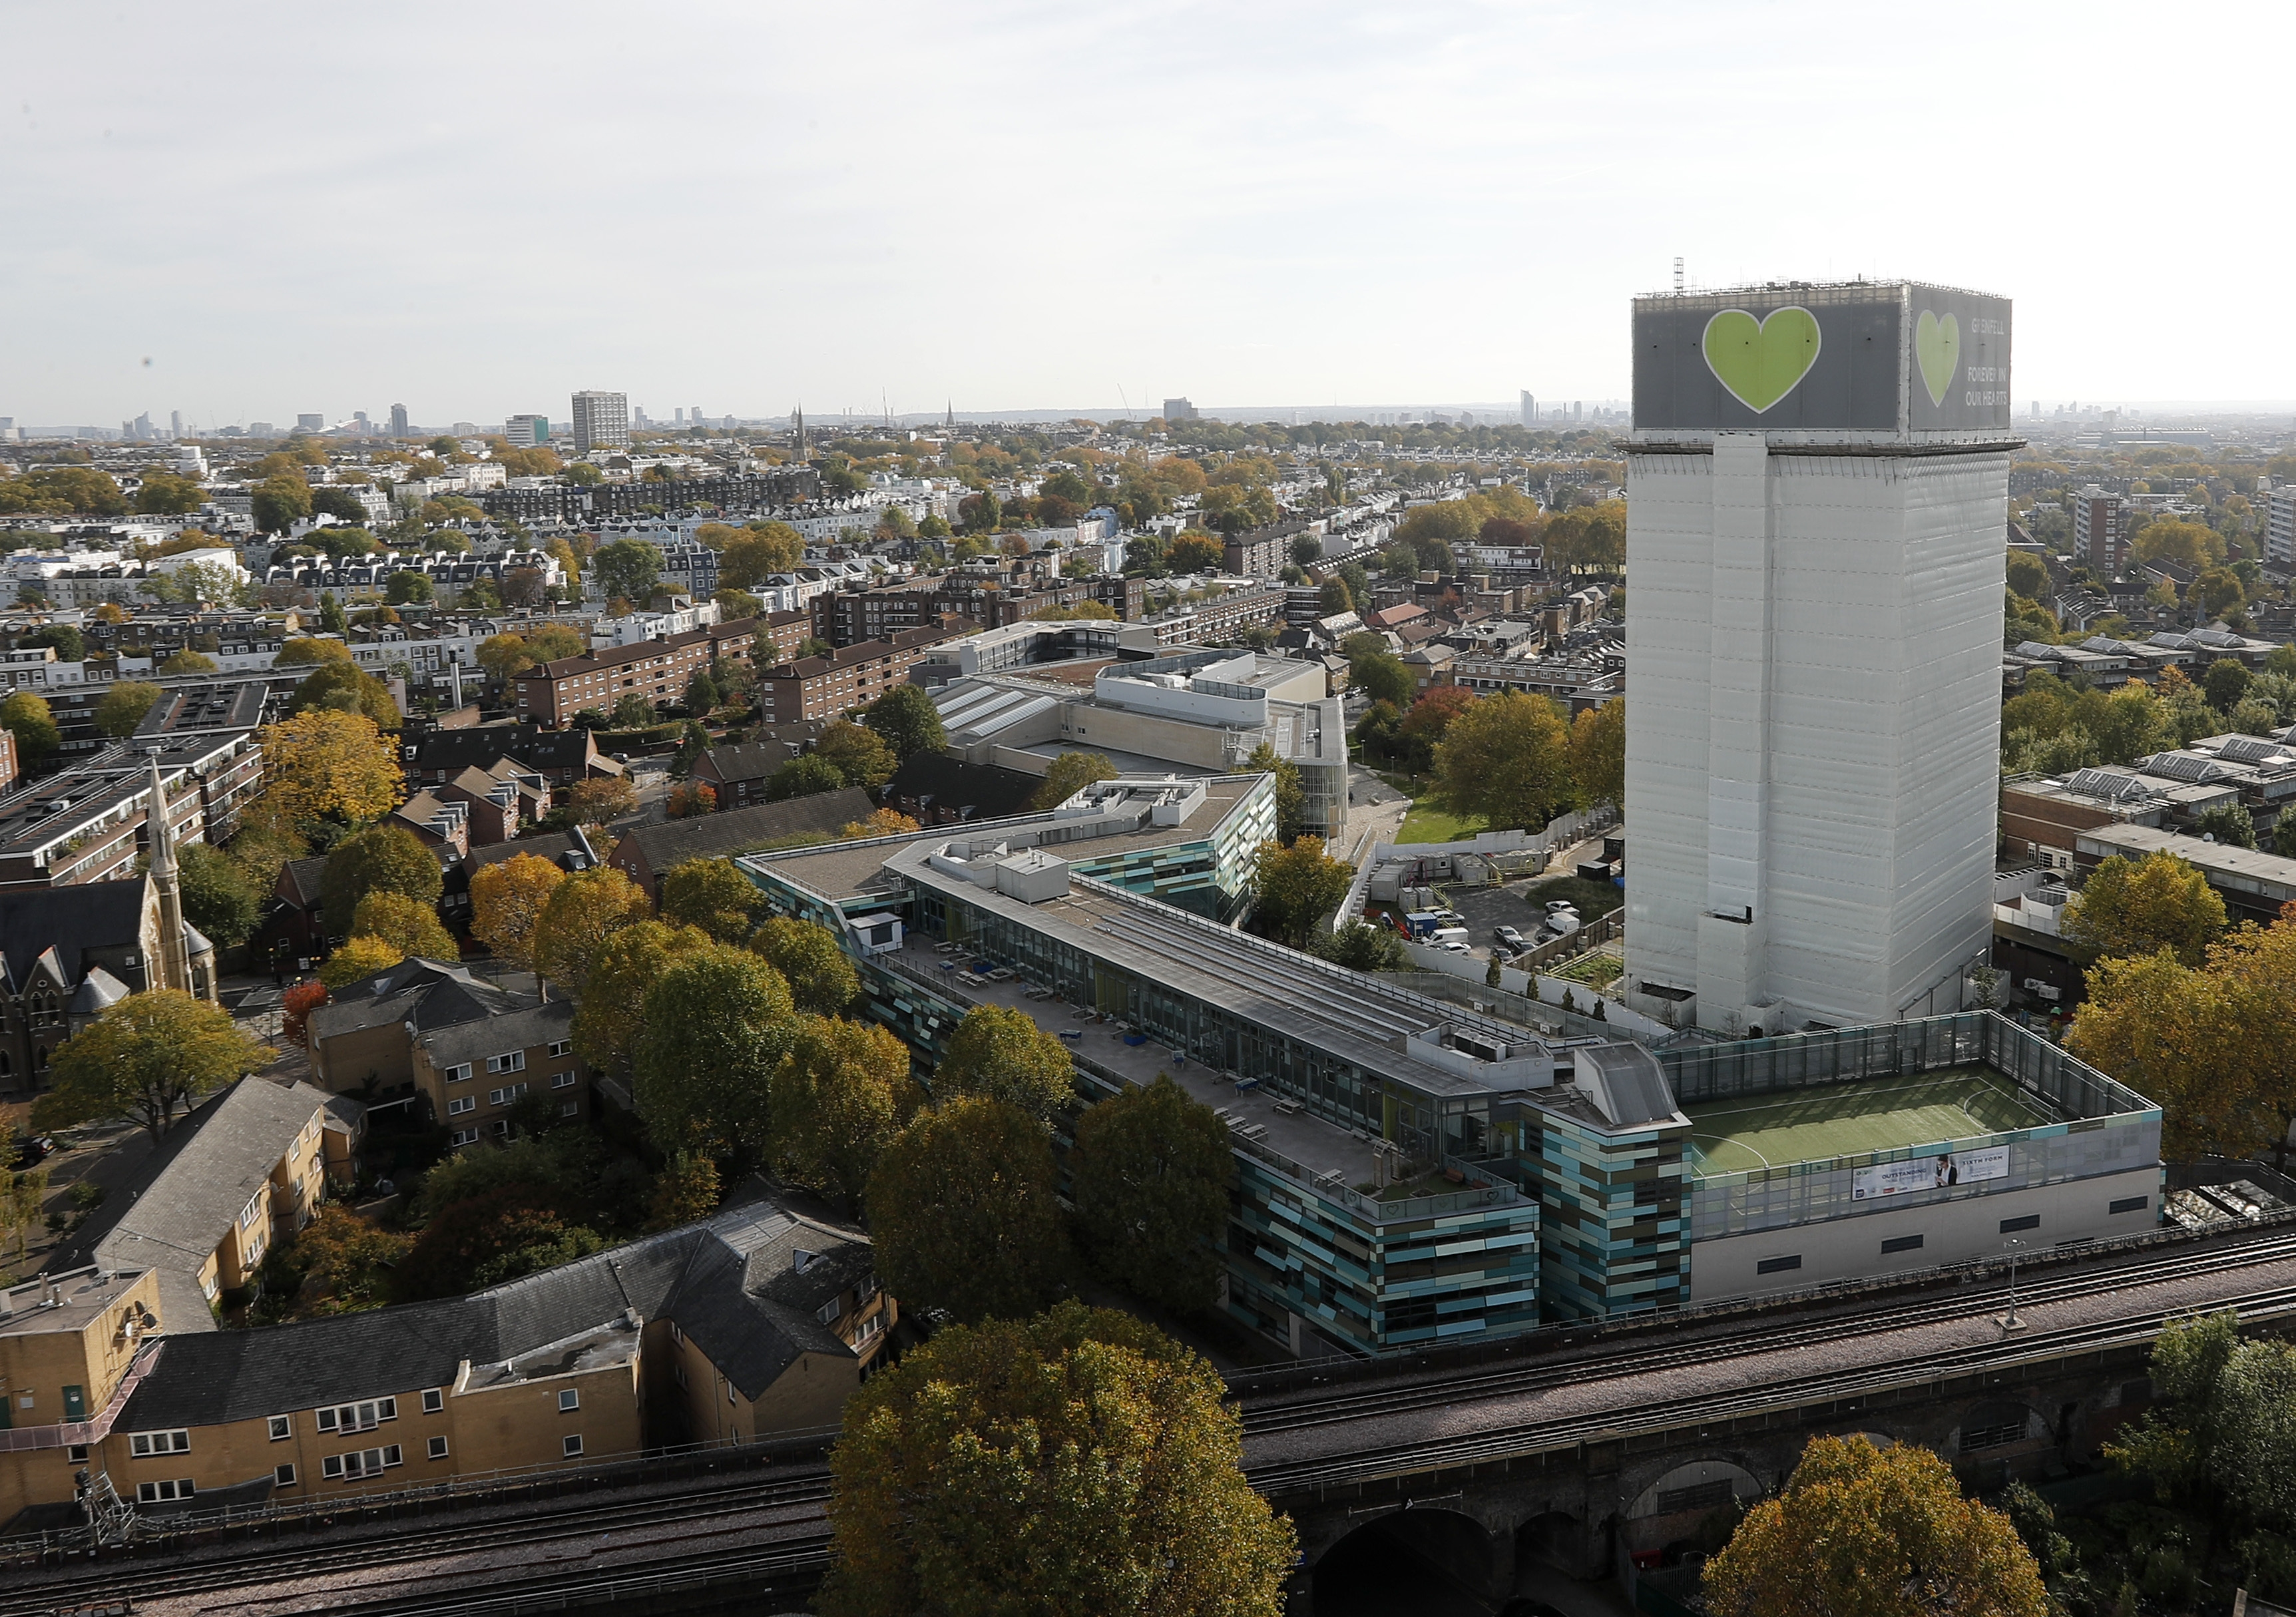 Grenfell Tower inquiry member quits over 'links to cladding firm'